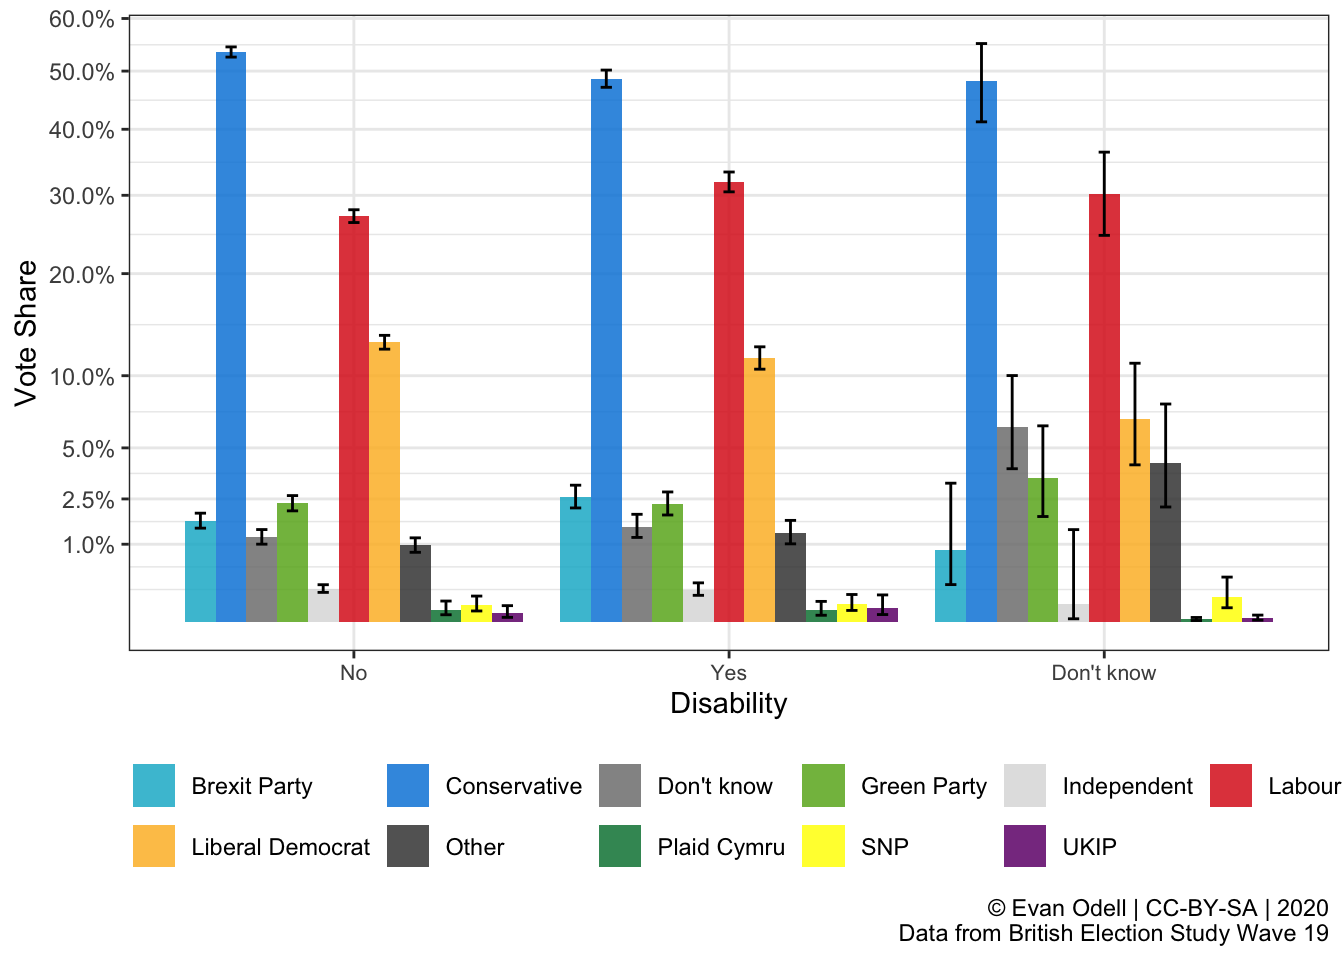 Disabled People's Voting Patterns in the 2019 General Election